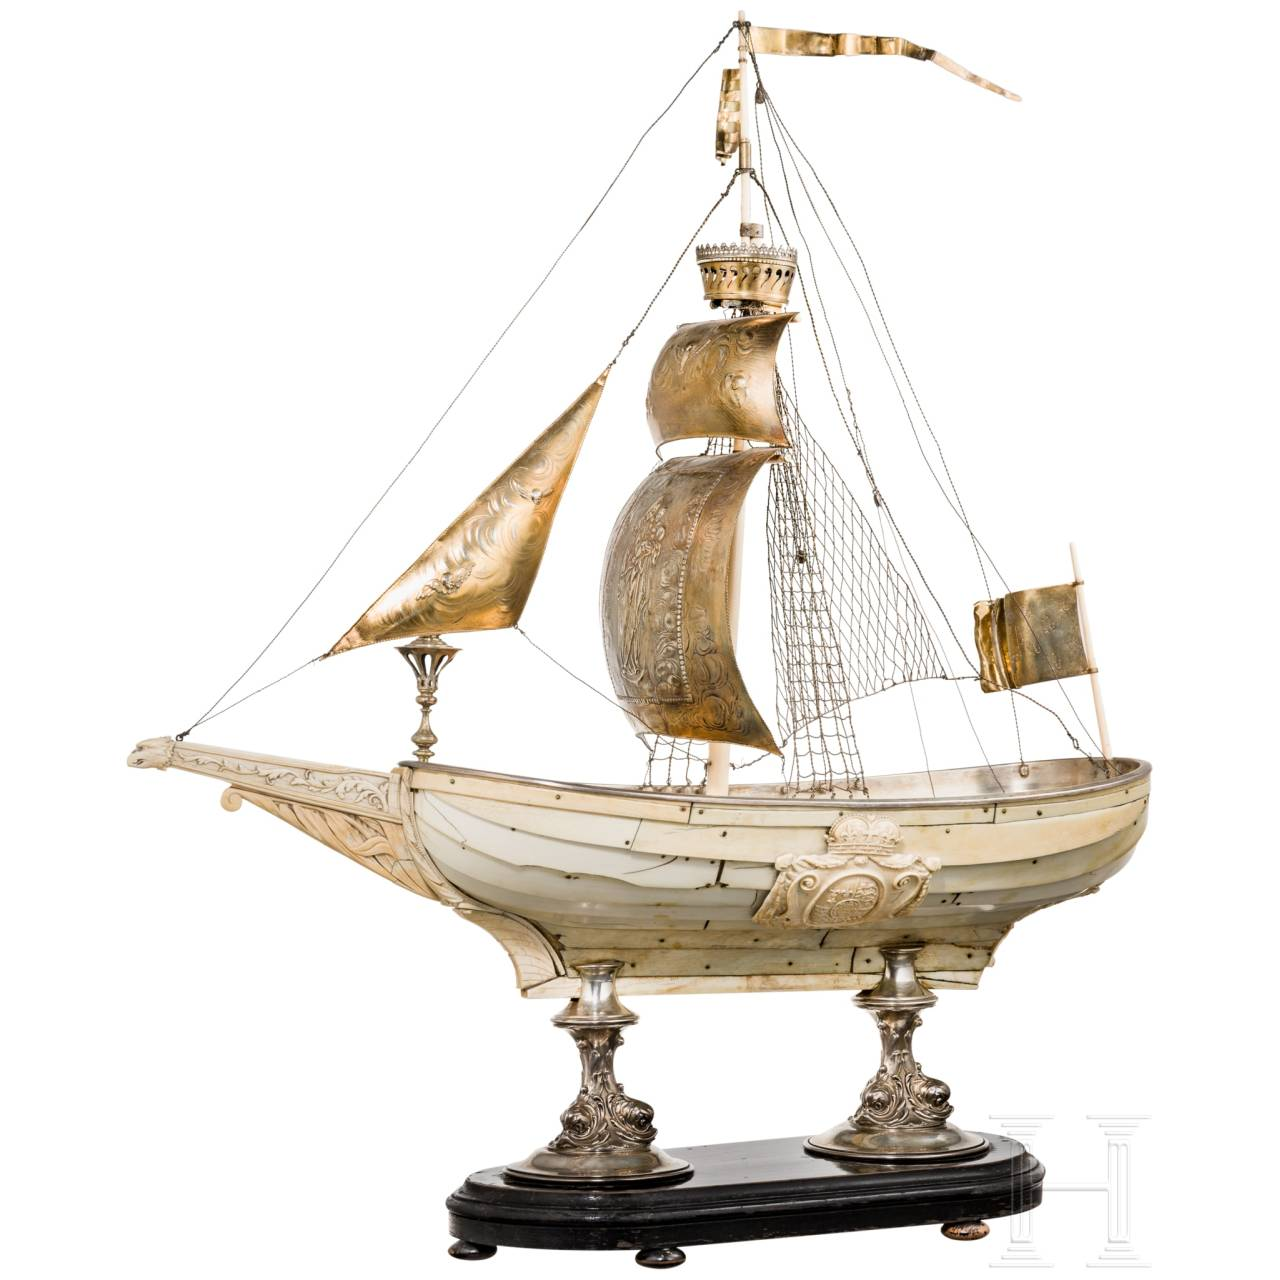 A magnificent, French or German table centrepiece in the shape of a large ivory ship, 1st half of the 19th century